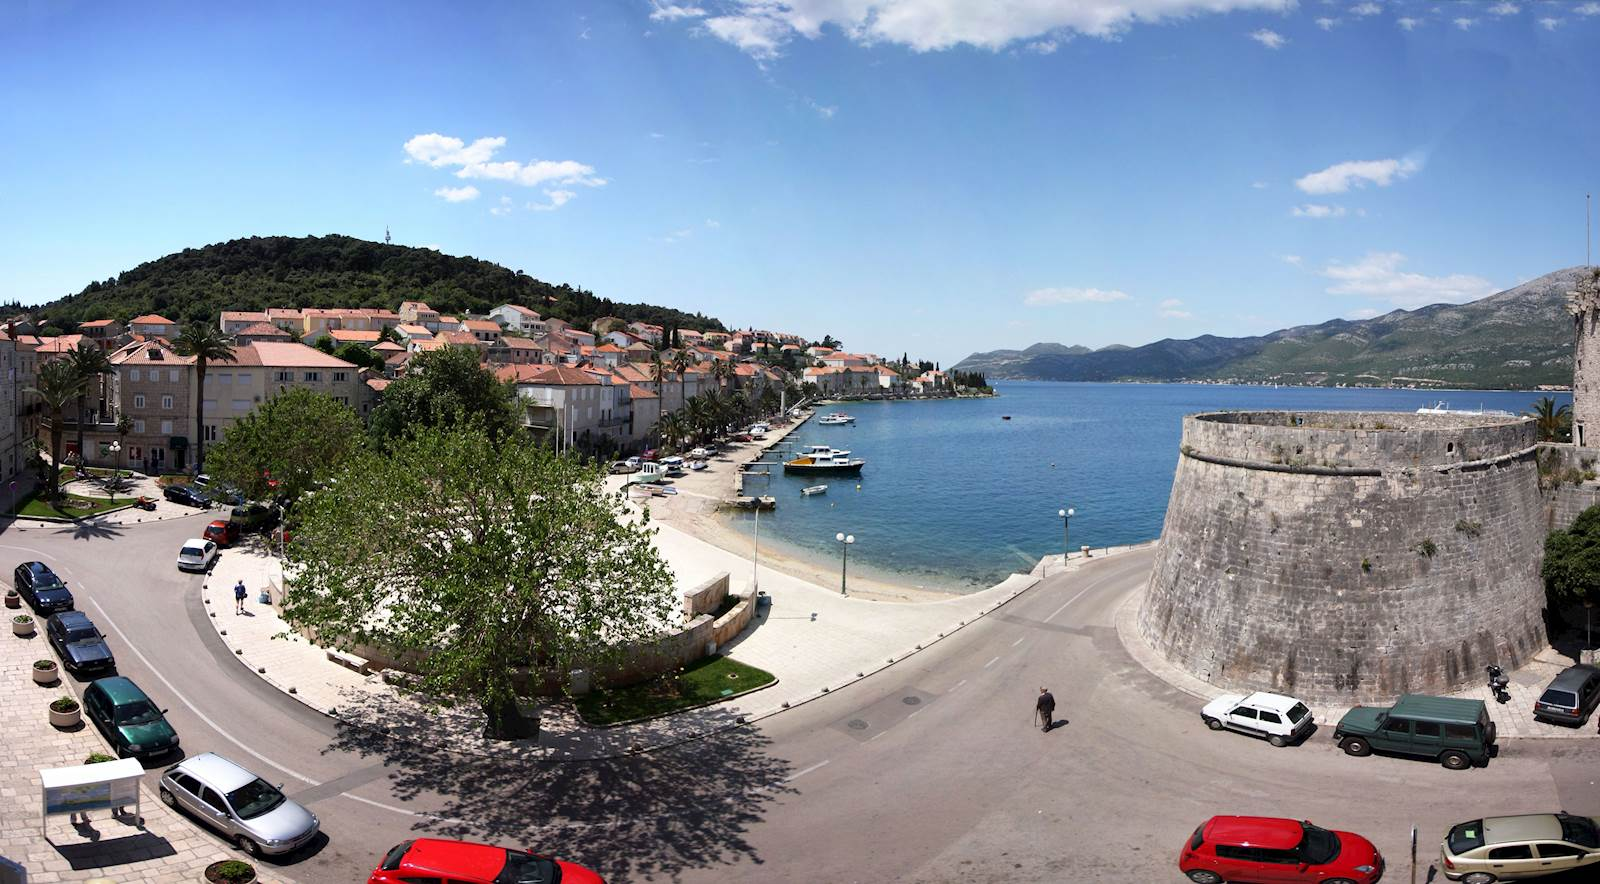 -images-excursions-korcula-boat-excursion-b-korcula-square-reconciliation.jpg